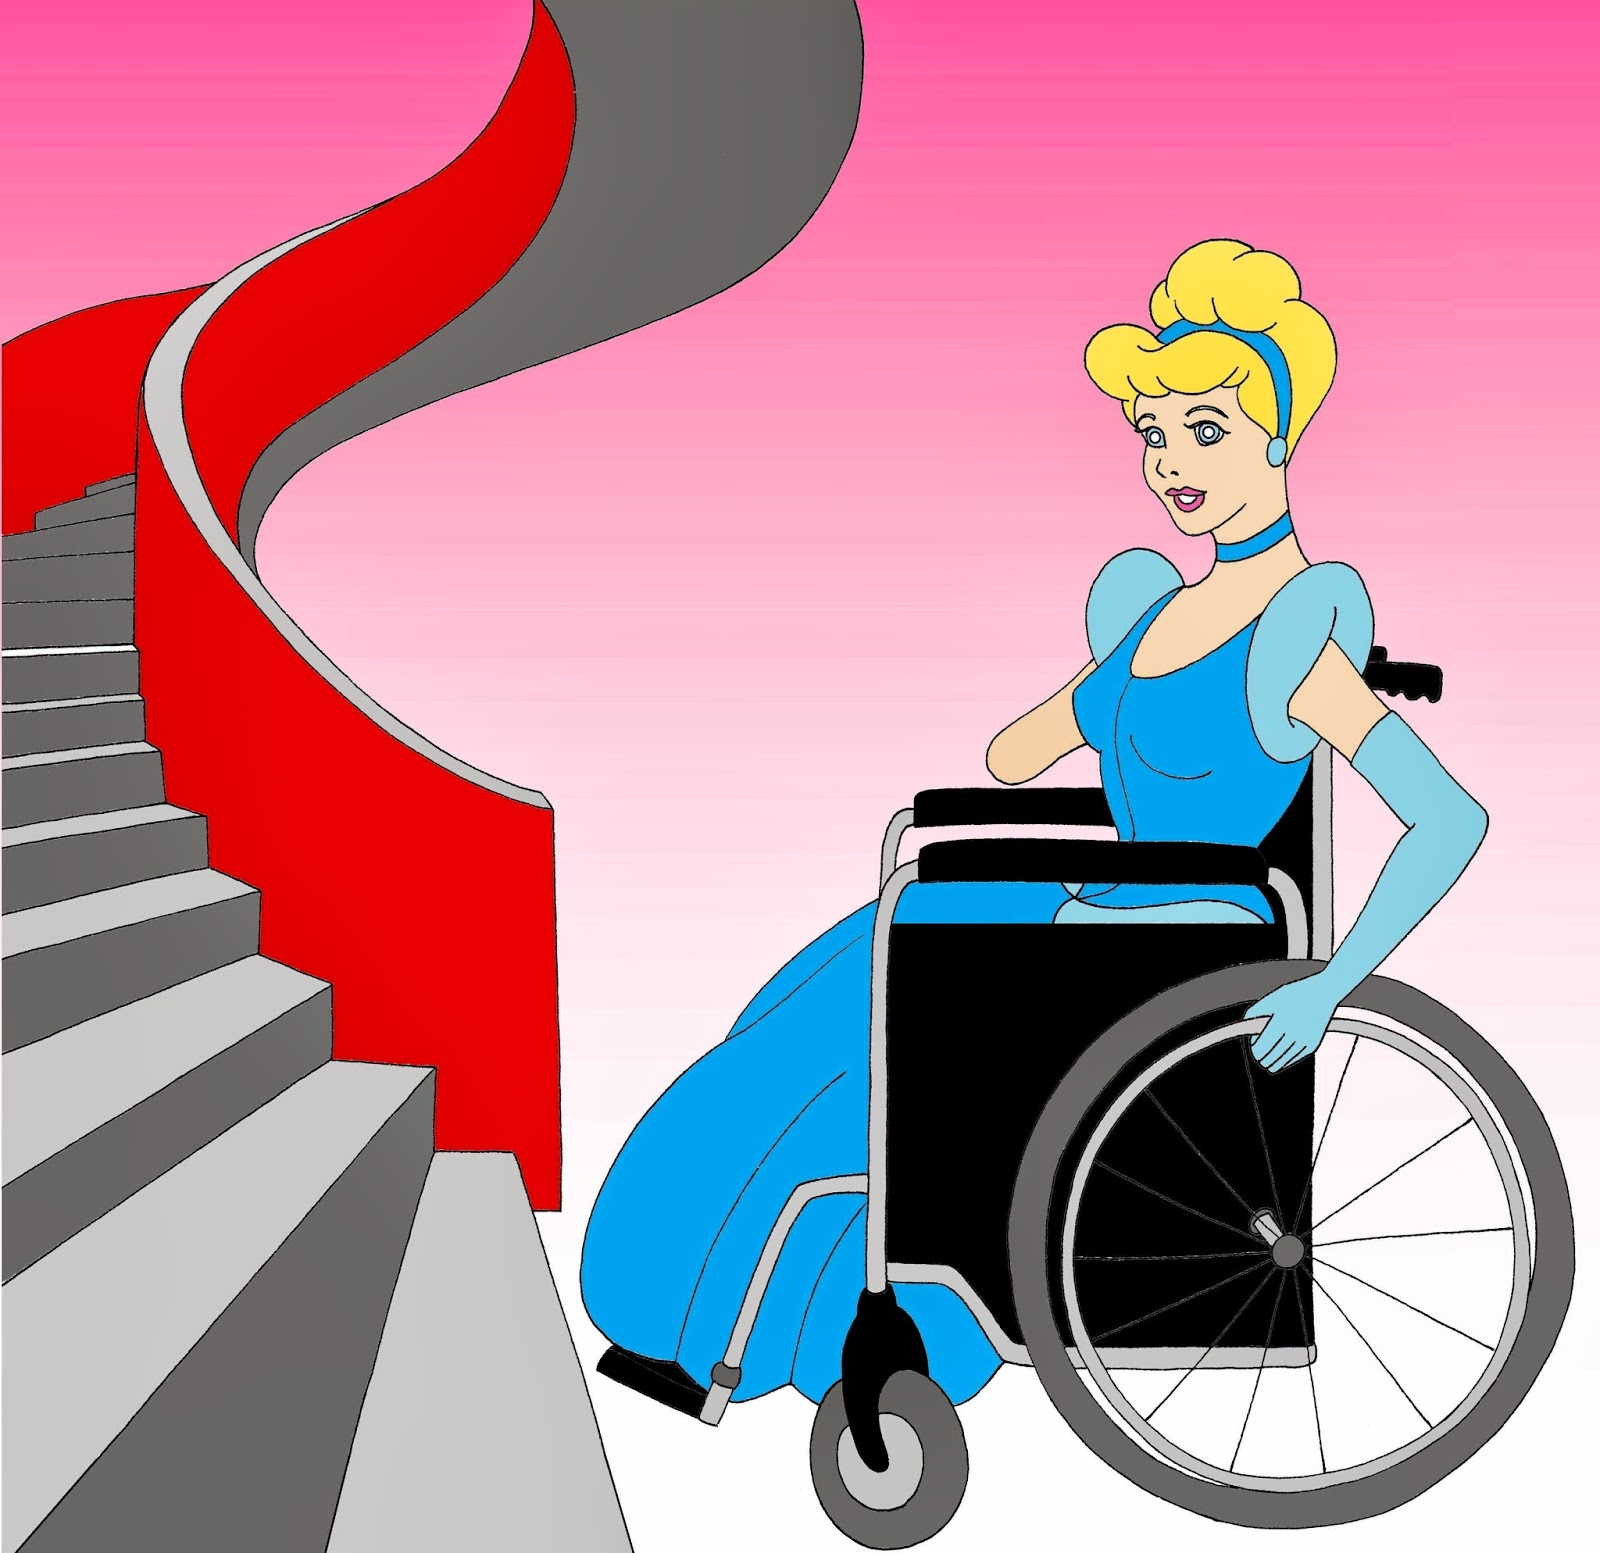 Humor Chic Humor Chic Equal Rights Disabled Disney